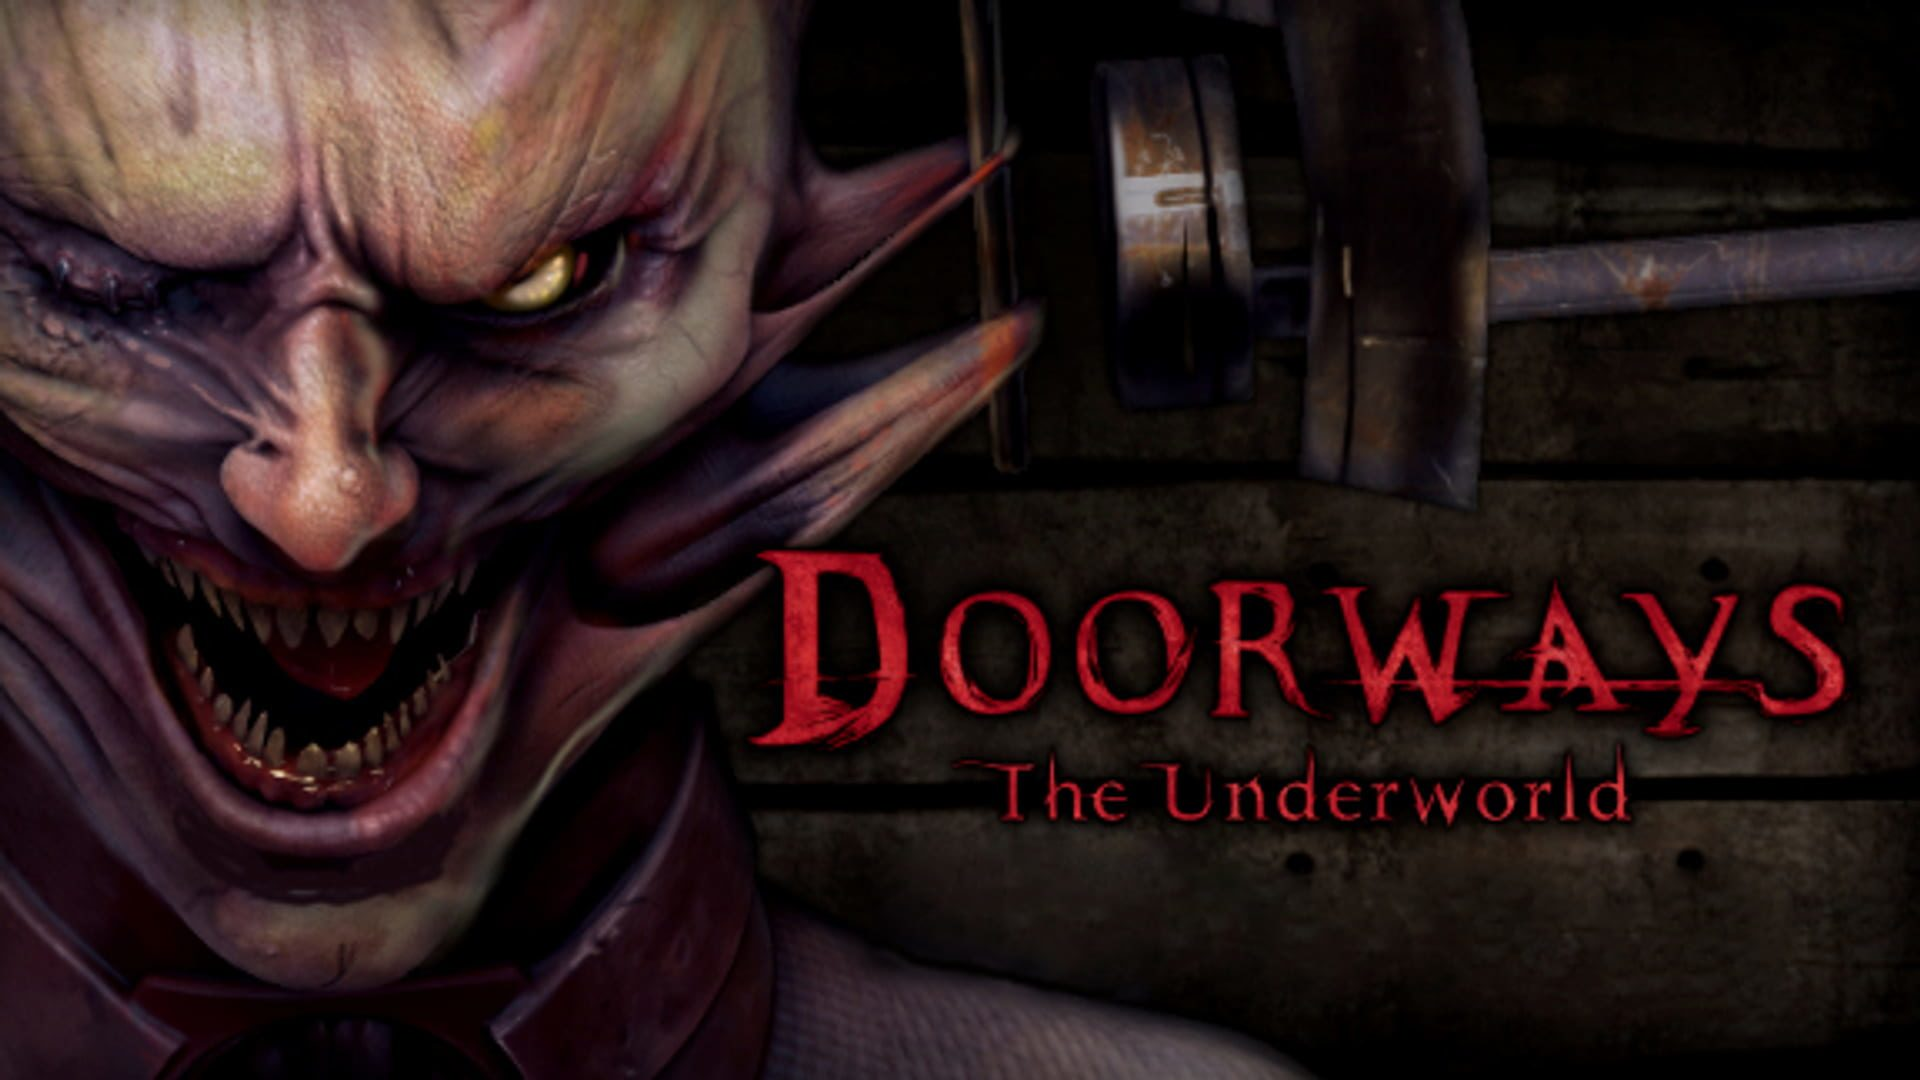 buy Doorways: The Underworld cd key for pc platform